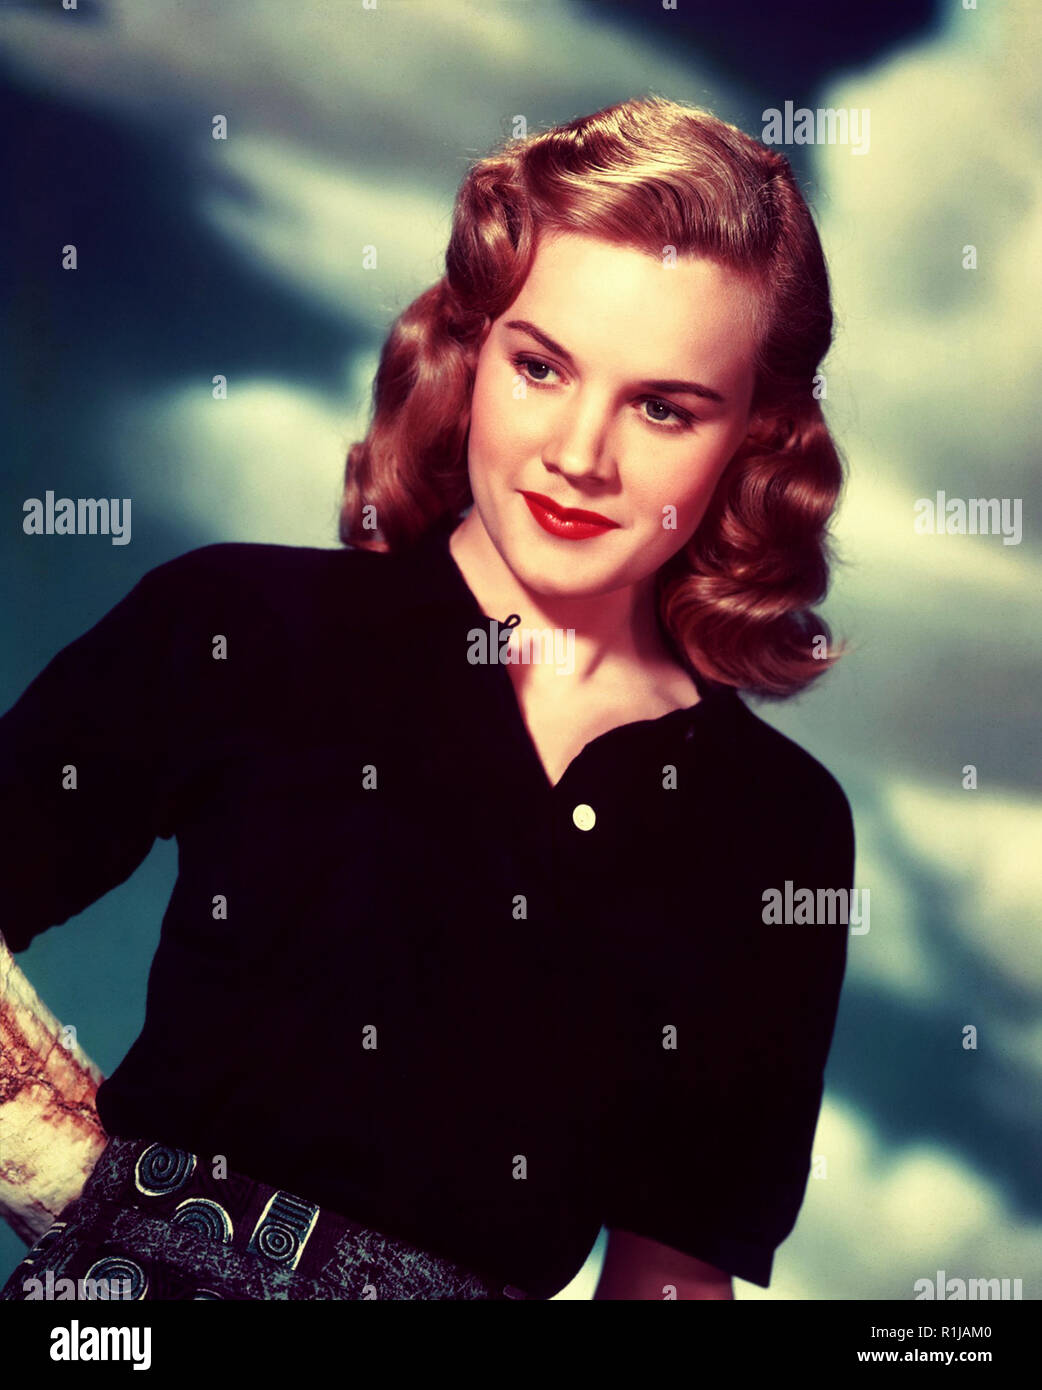 Carroll Baker (born May 28, 1931) is a retired American actress of film, stage, and television. Throughout the 1950s and 1960s, Baker's range of roles from naive ingÈnues to brash and flamboyant women established her as both a serious dramatic actress and a pin-up. After studying under Lee Strasberg at the Actors Studio, Baker began performing on Broadway in 1954, where she was recruited by director Elia Kazan to play the lead in the film of Tennessee Williams's Baby Doll (1956). Her role in the film as a sexually repressed Southern bride earned her BAFTA and Academy Award nominations for Best - Stock Image